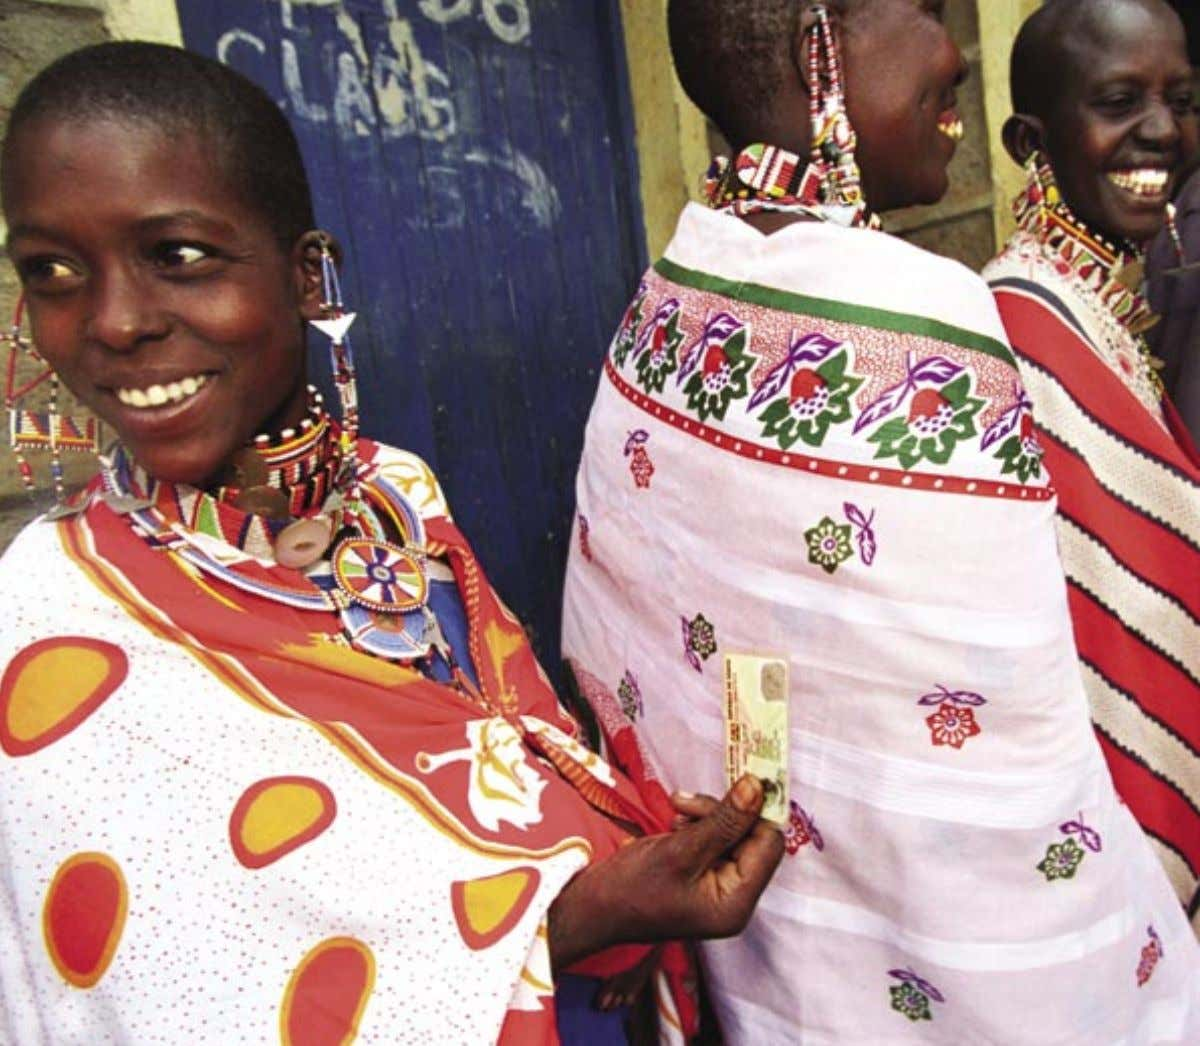 5 42 Masai women queue up outside a polling station in Kajiado district, holding their voting